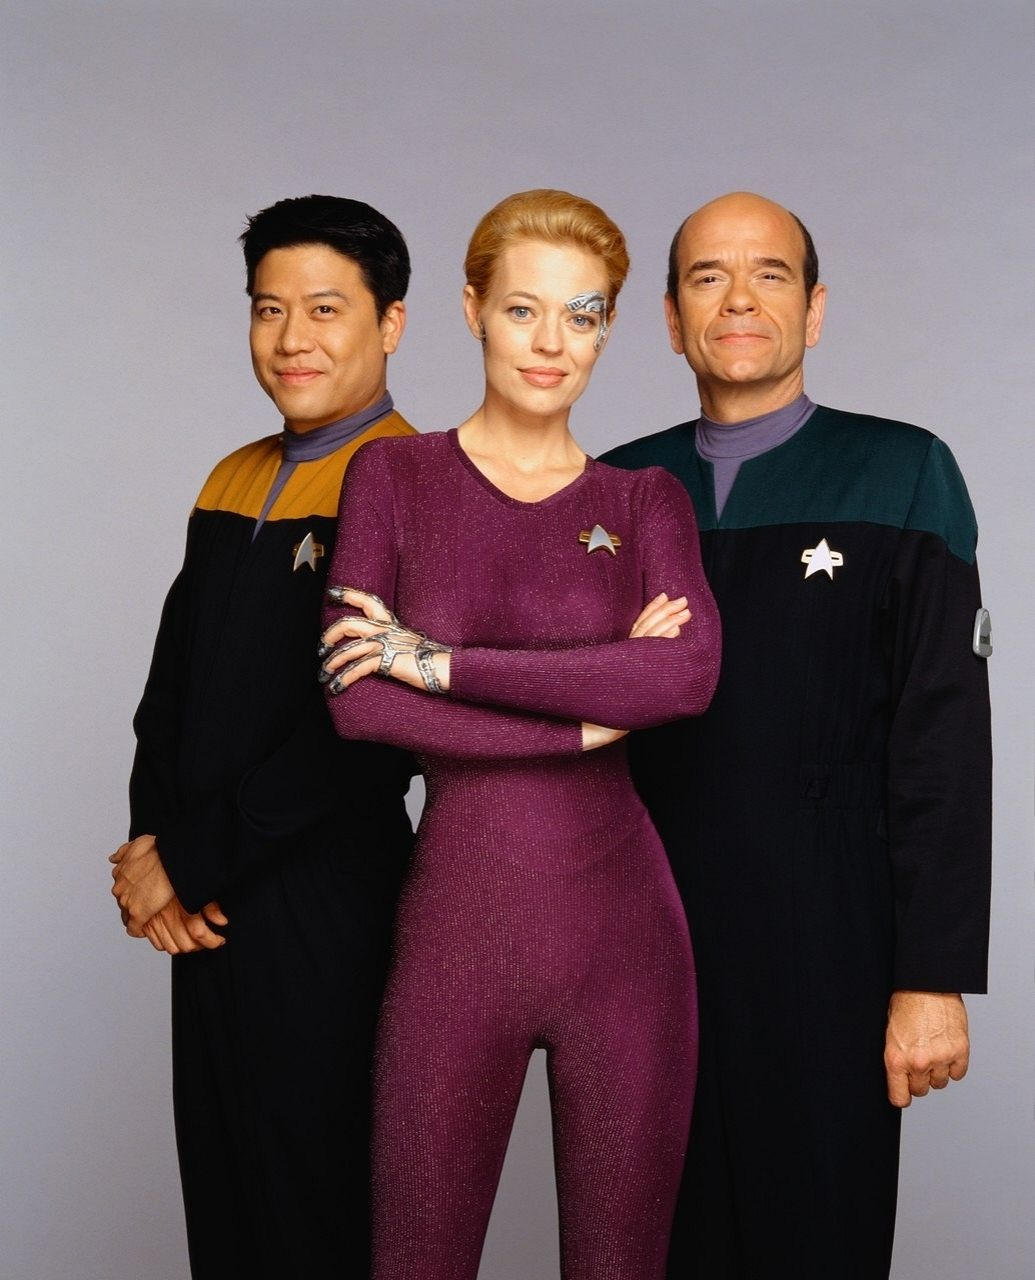 Seven Of Nine Photo Seven Of Nine Star Trek Voyager Star Trek Images Fandom Star Trek